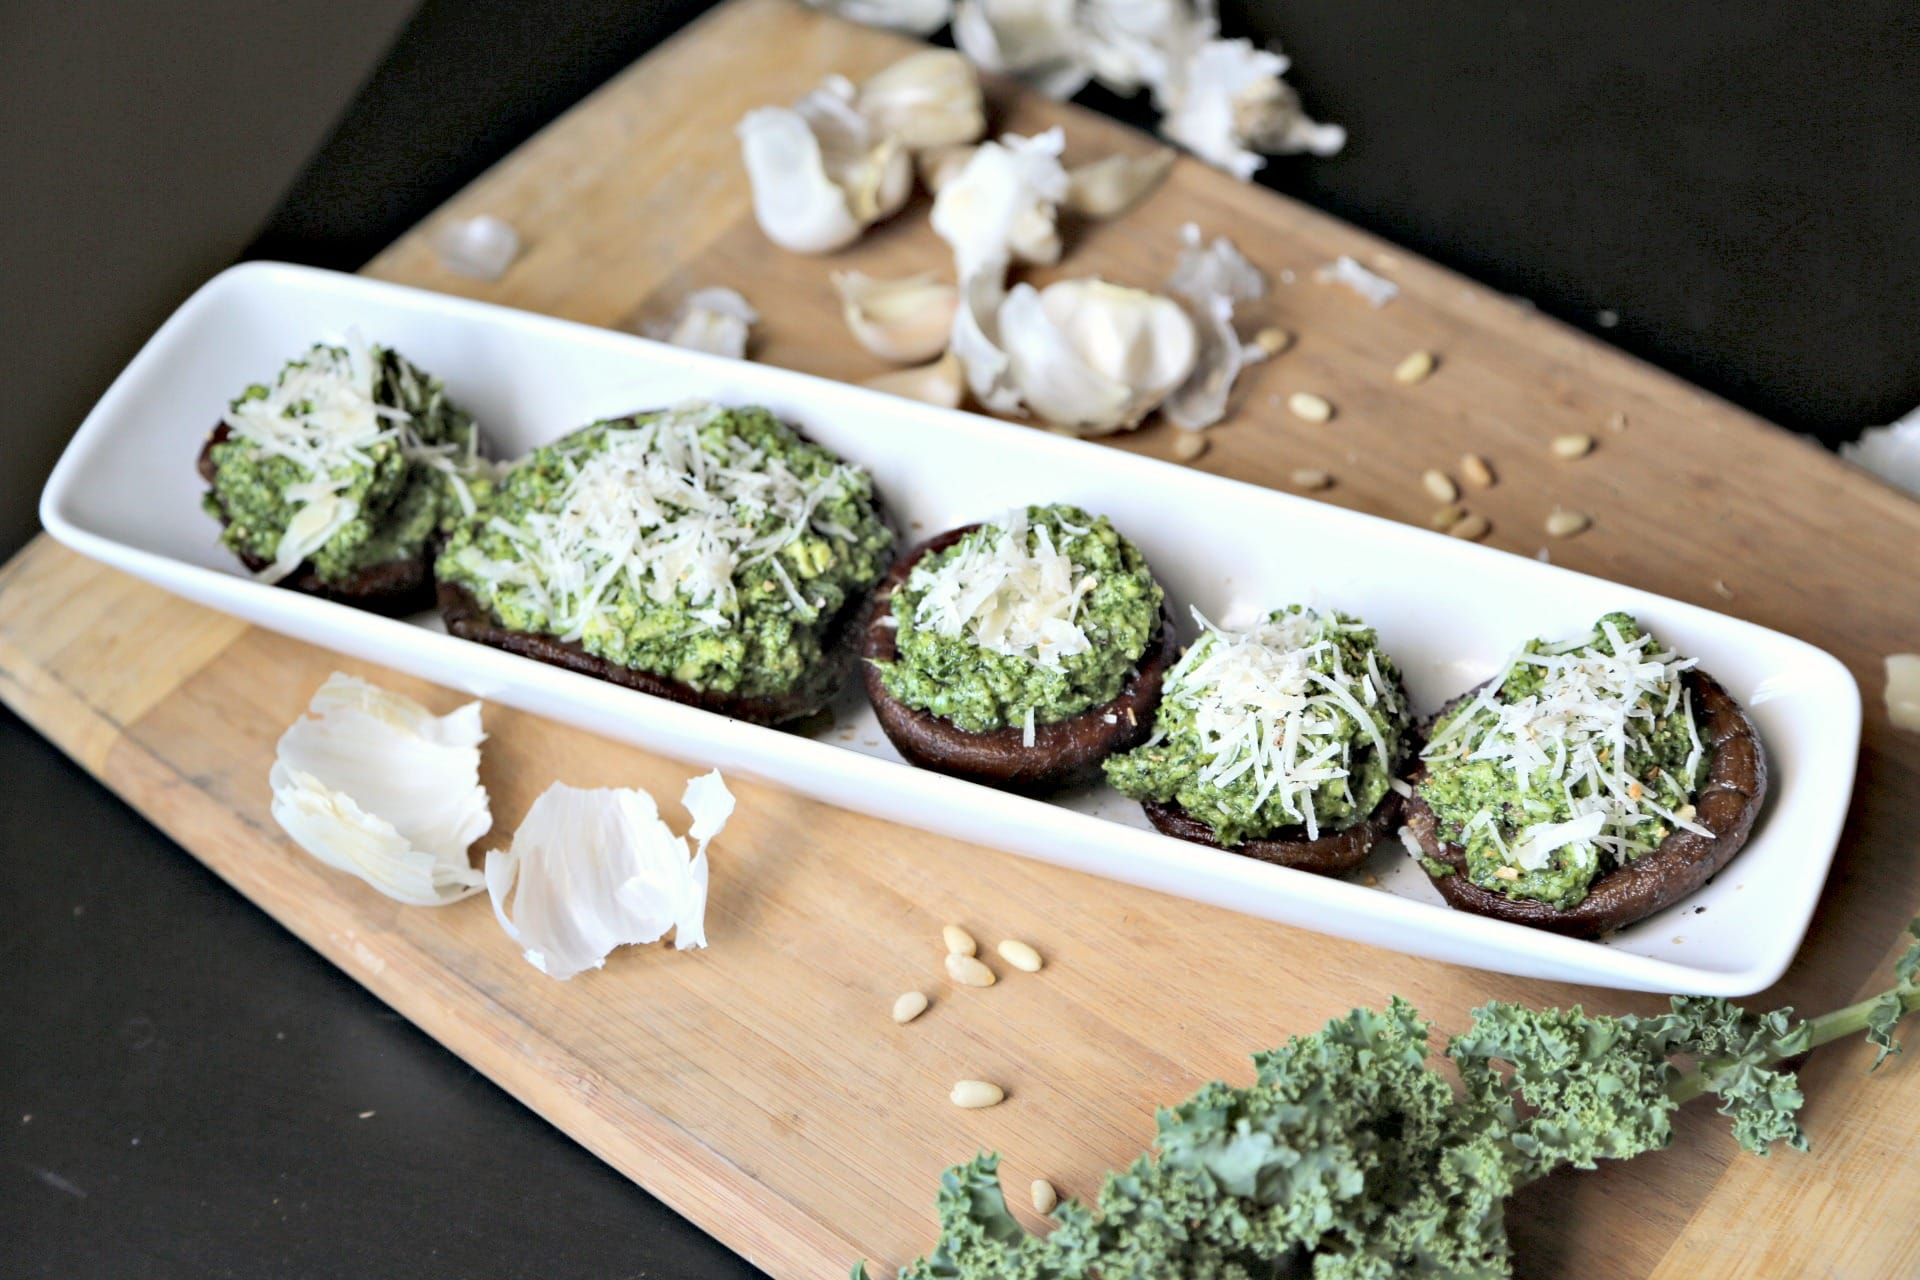 Avocado and Kale Pesto stuffed Portobello Mushrooms